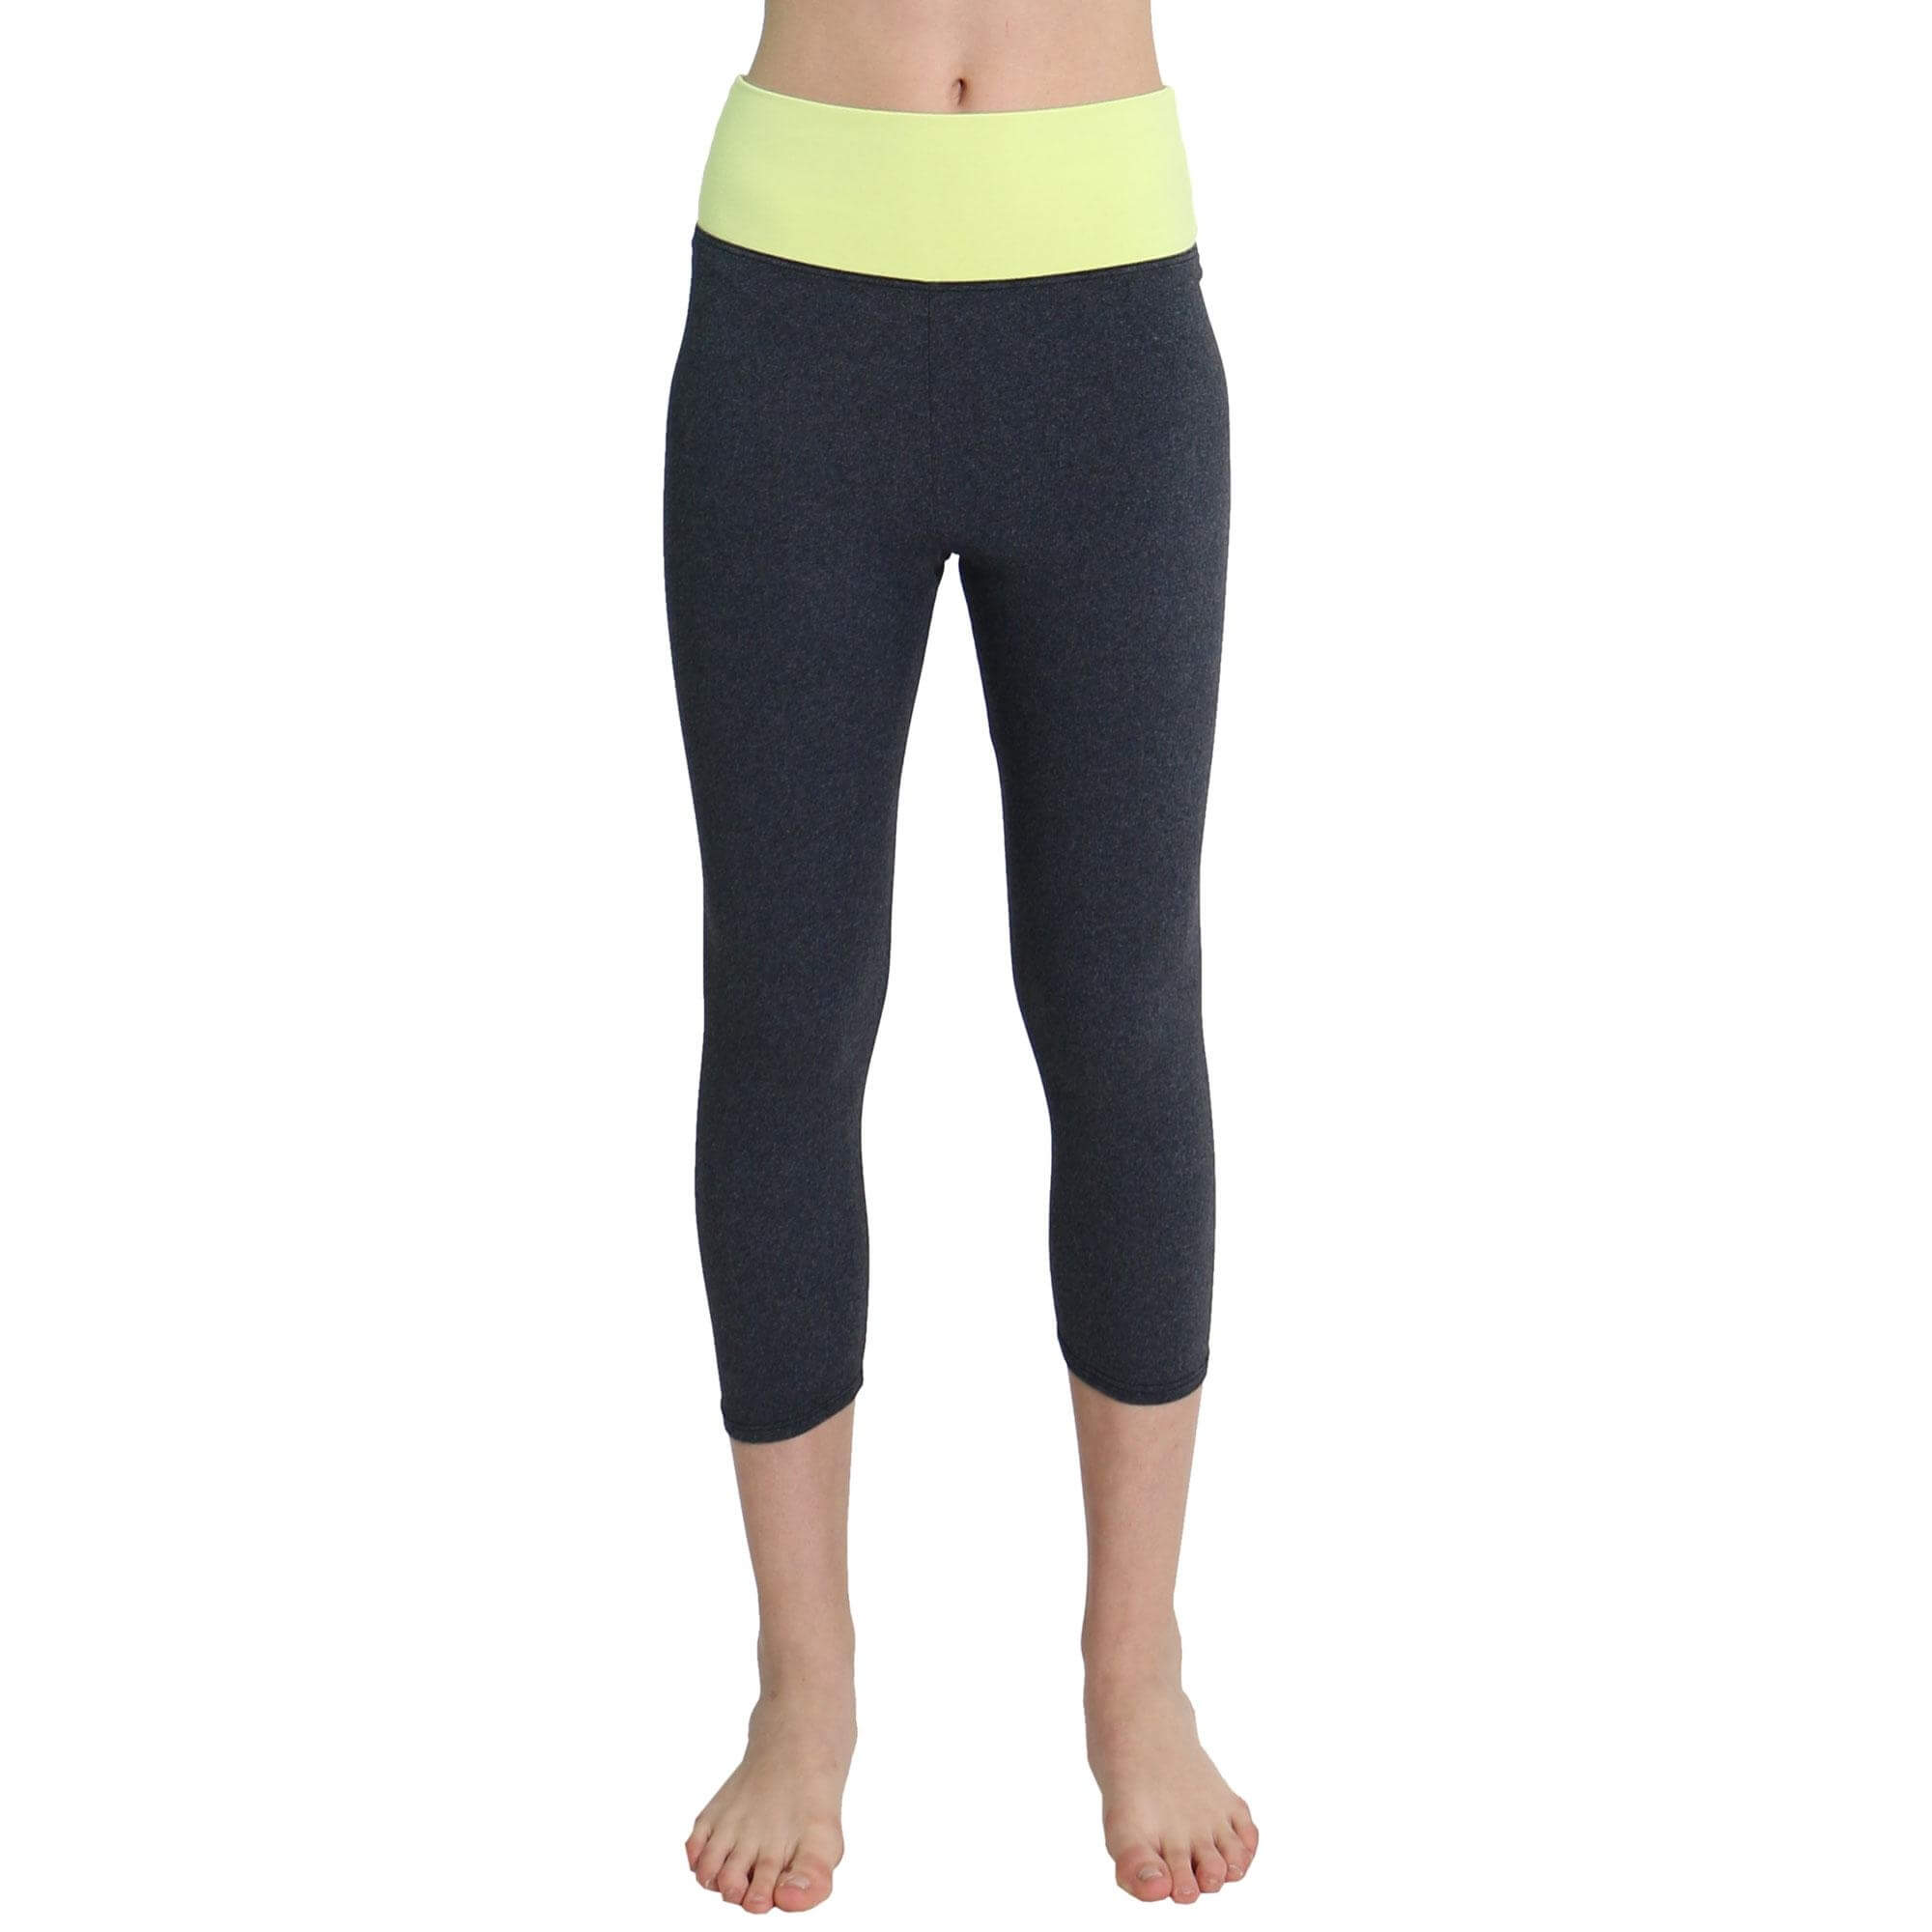 Suede Supplex Tranquility Capri Legging